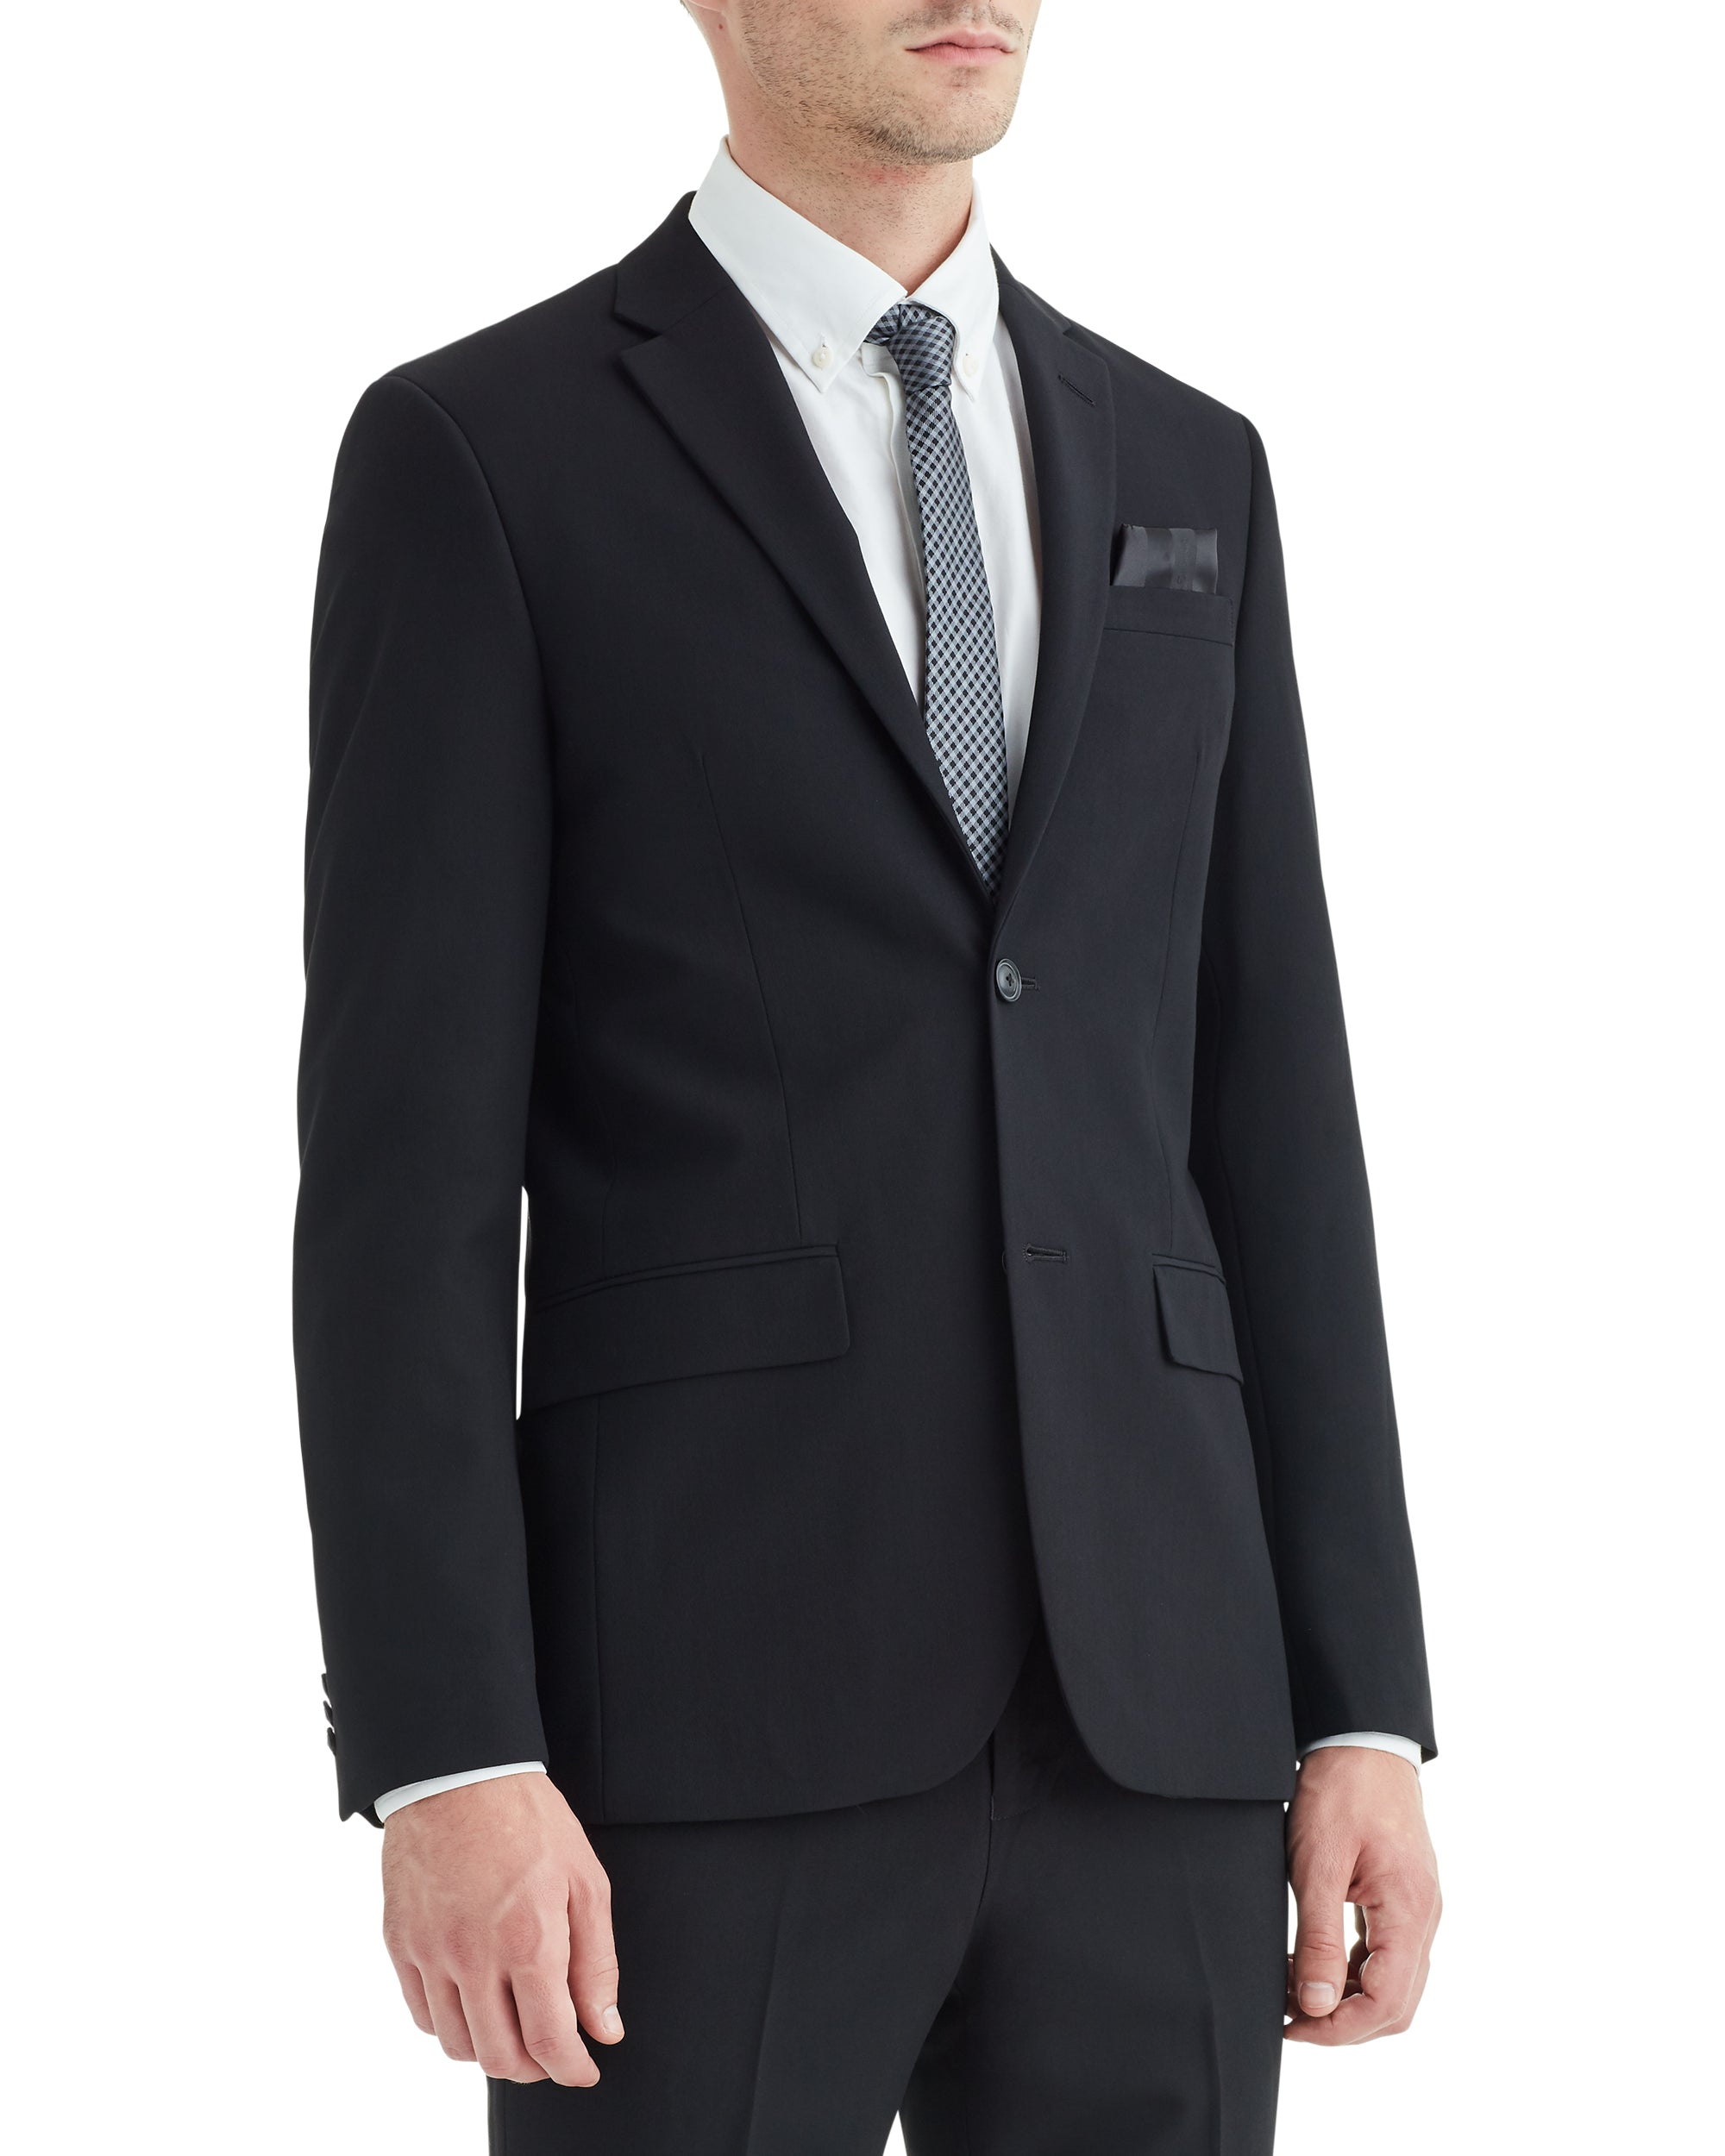 Burge Bi-Stretch Two-Button Notch Lapel Jacket - Black